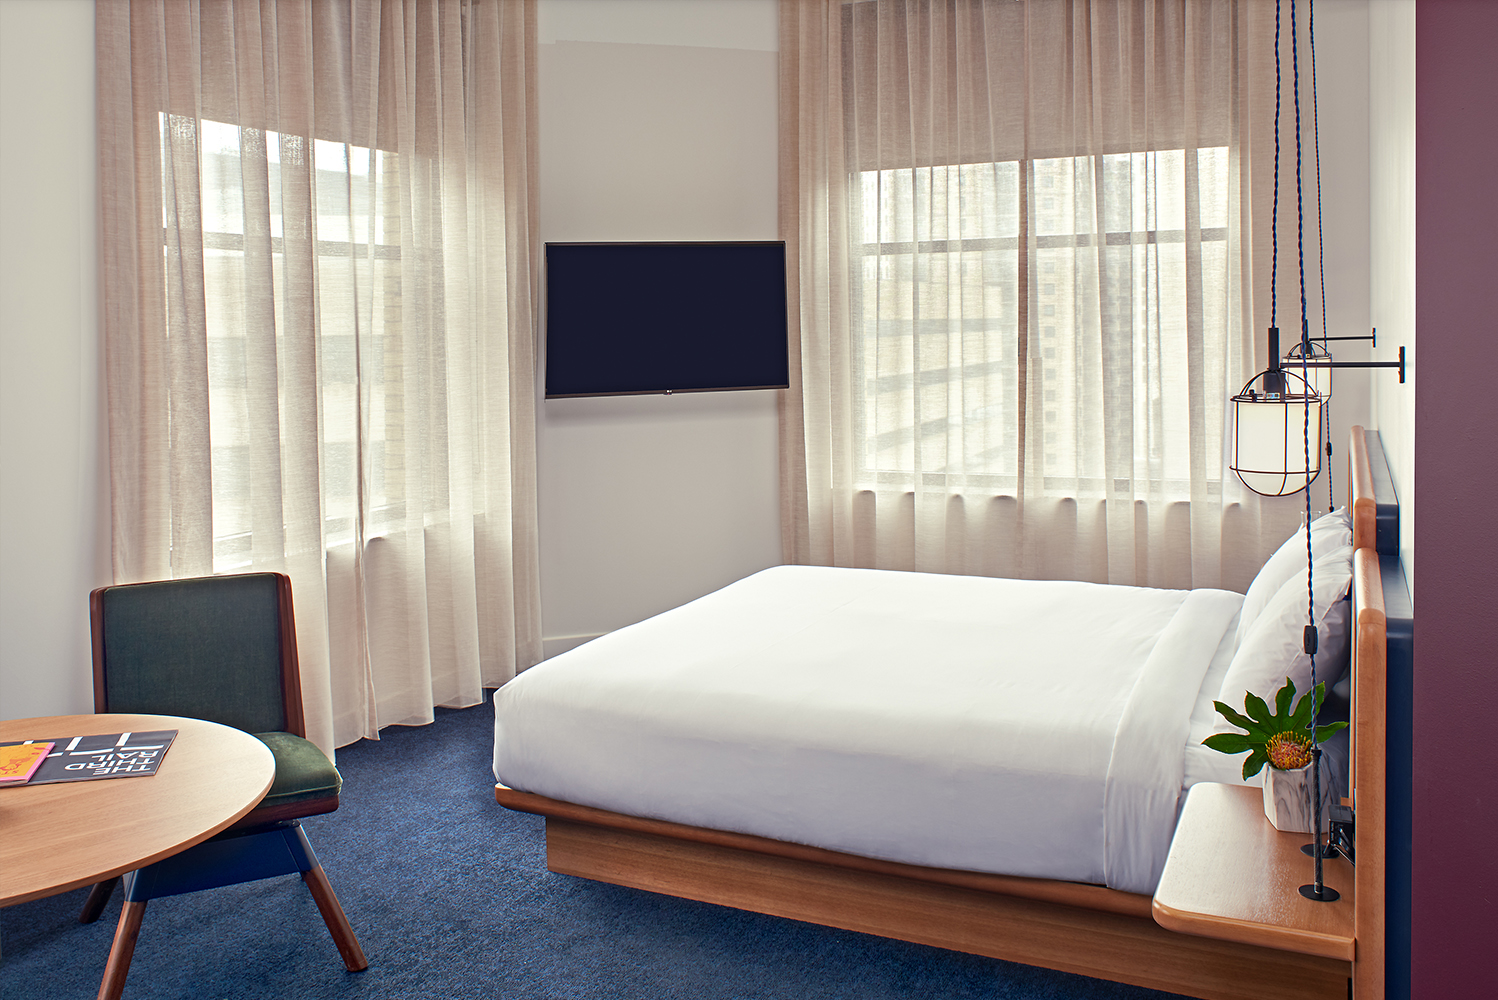 The guestrooms have a midcentury vibe, playing homage to the property's past as Midland Bank.